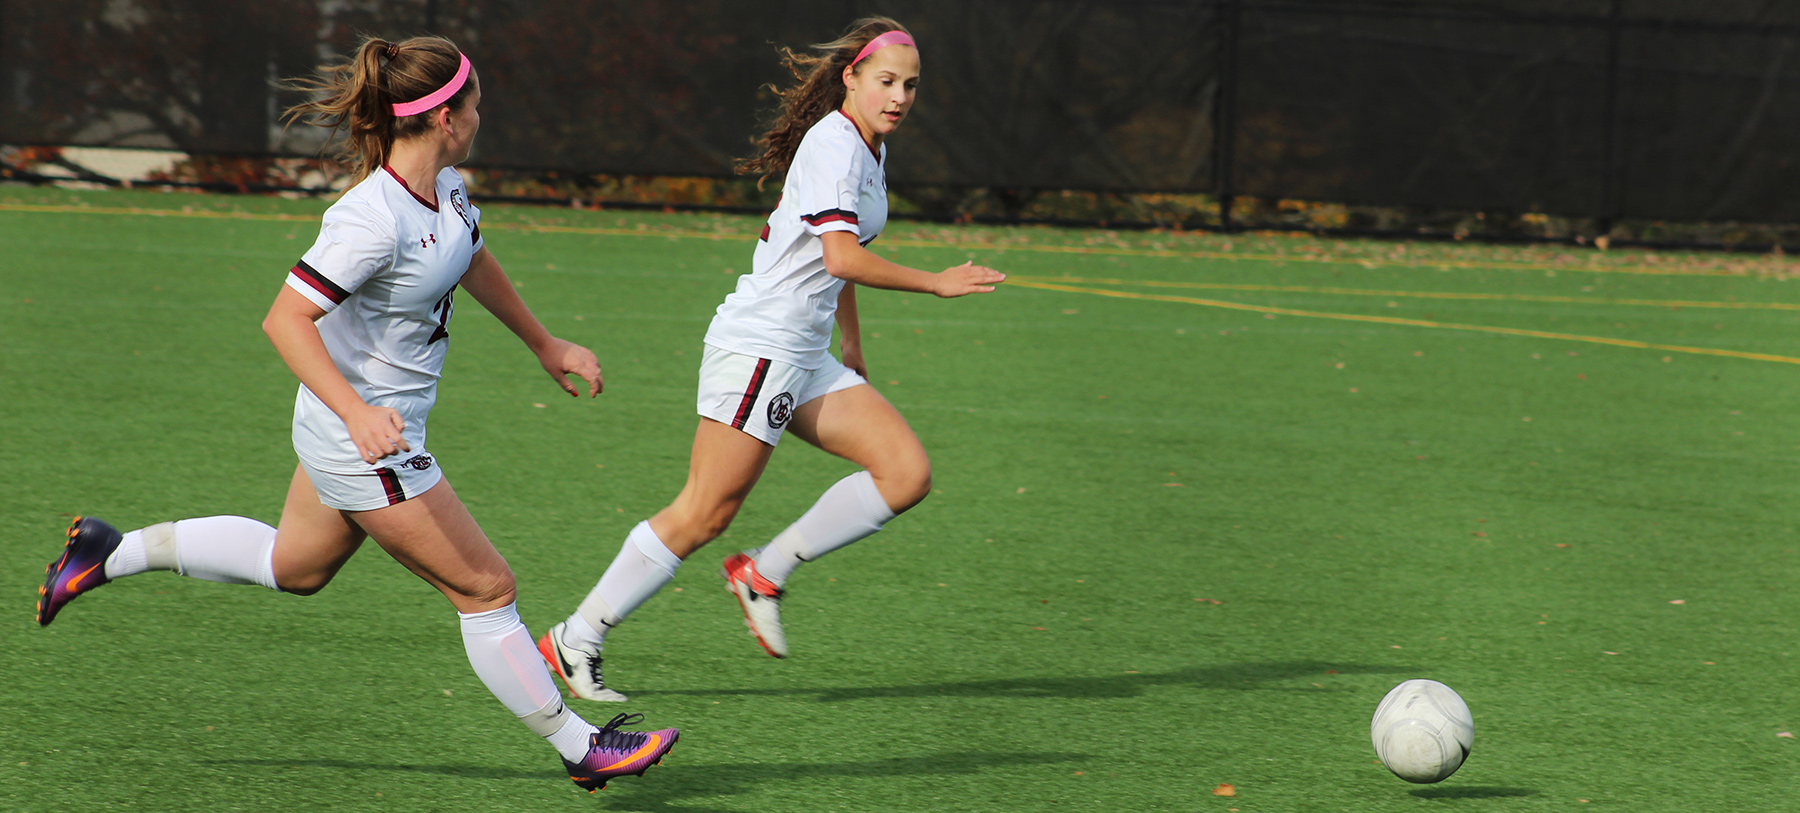 Two girls in soccer uniforms run while kicking a ball